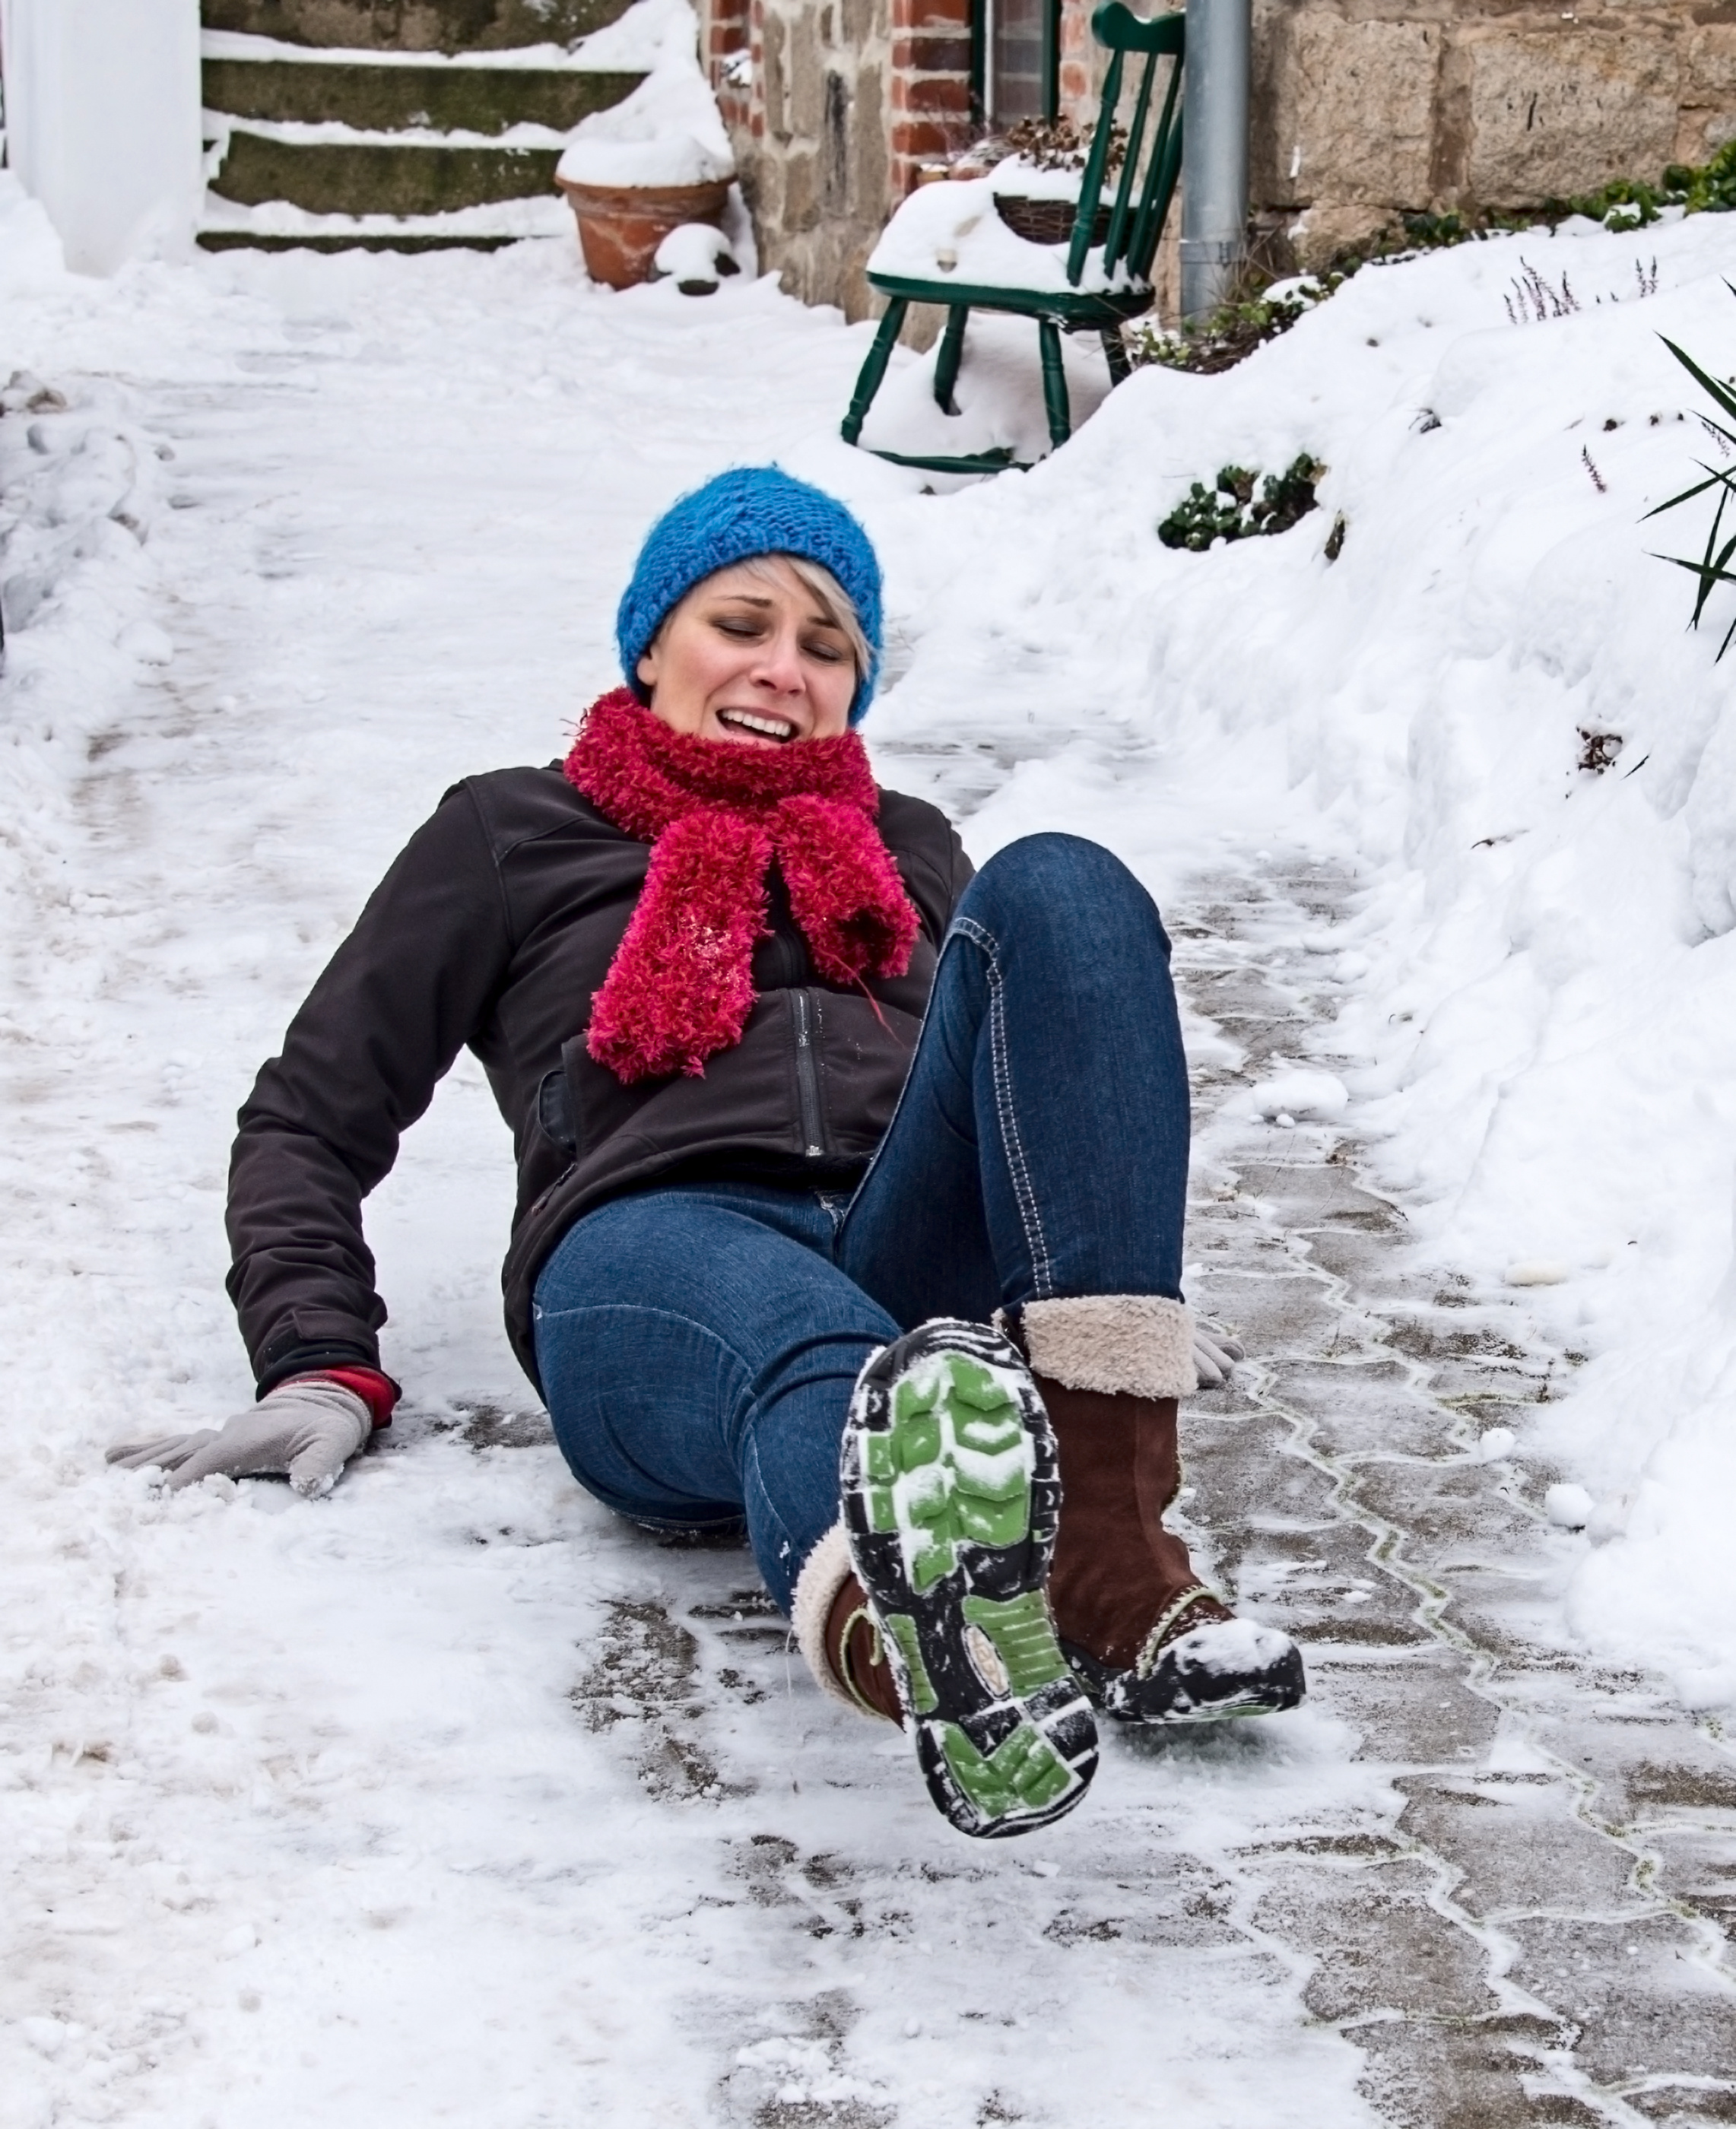 Falls on icy surfaces are a major cause of ankle sprains and fractures. It's critical to seek prompt treatment to prevent further damage that can prolong recovery.